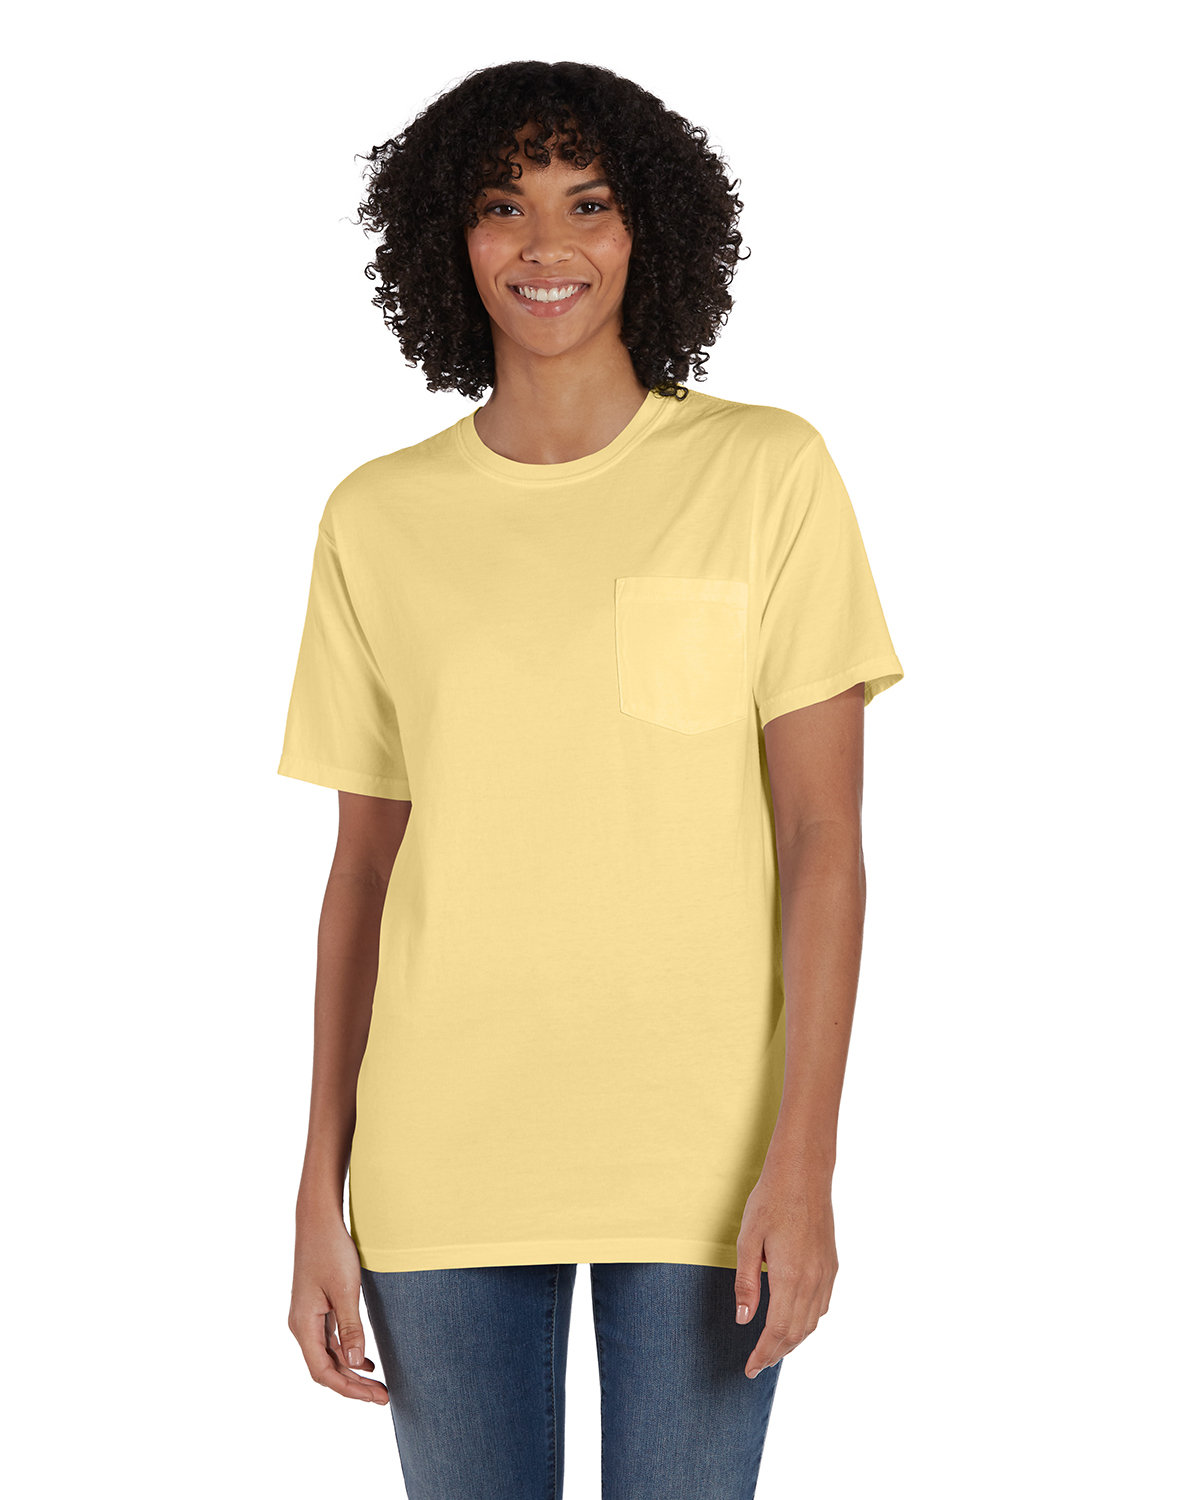 ComfortWash by Hanes Unisex Garment-Dyed T-Shirt with Pocket SUMMER SQUASH